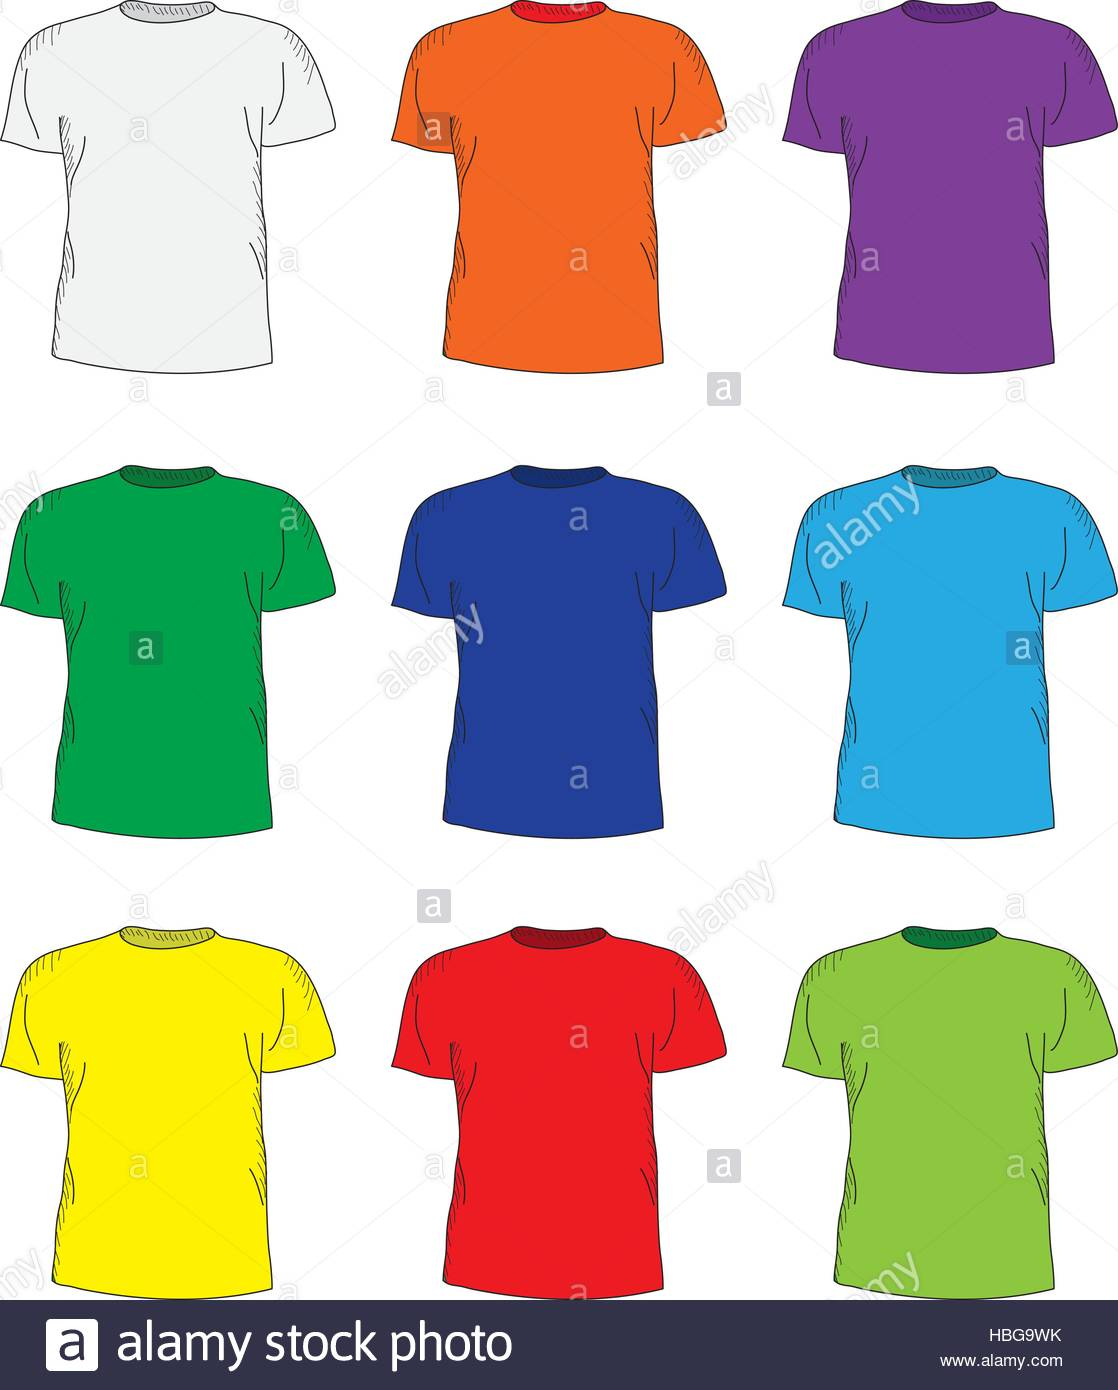 1118x1390 Men's T Shirts Design Template Set. Multi Colored T Shirts Stock